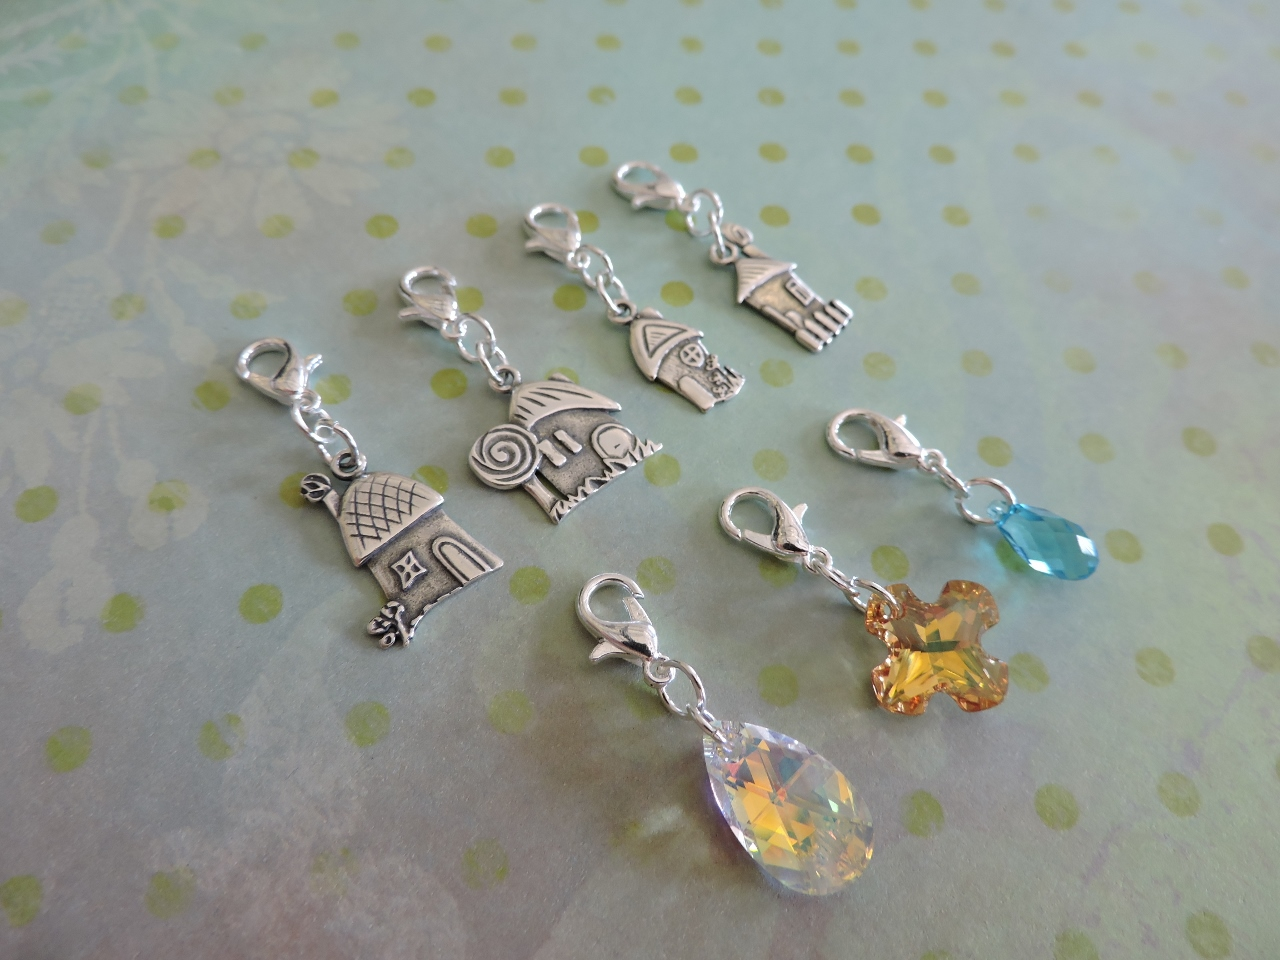 Charm necklaces with interchangeable lobster clasp charms rings an assortment of charm possibilities for your necklaces i used my favorite fairy house silver plated charms and a variety of swarovski crystal pendants aloadofball Images